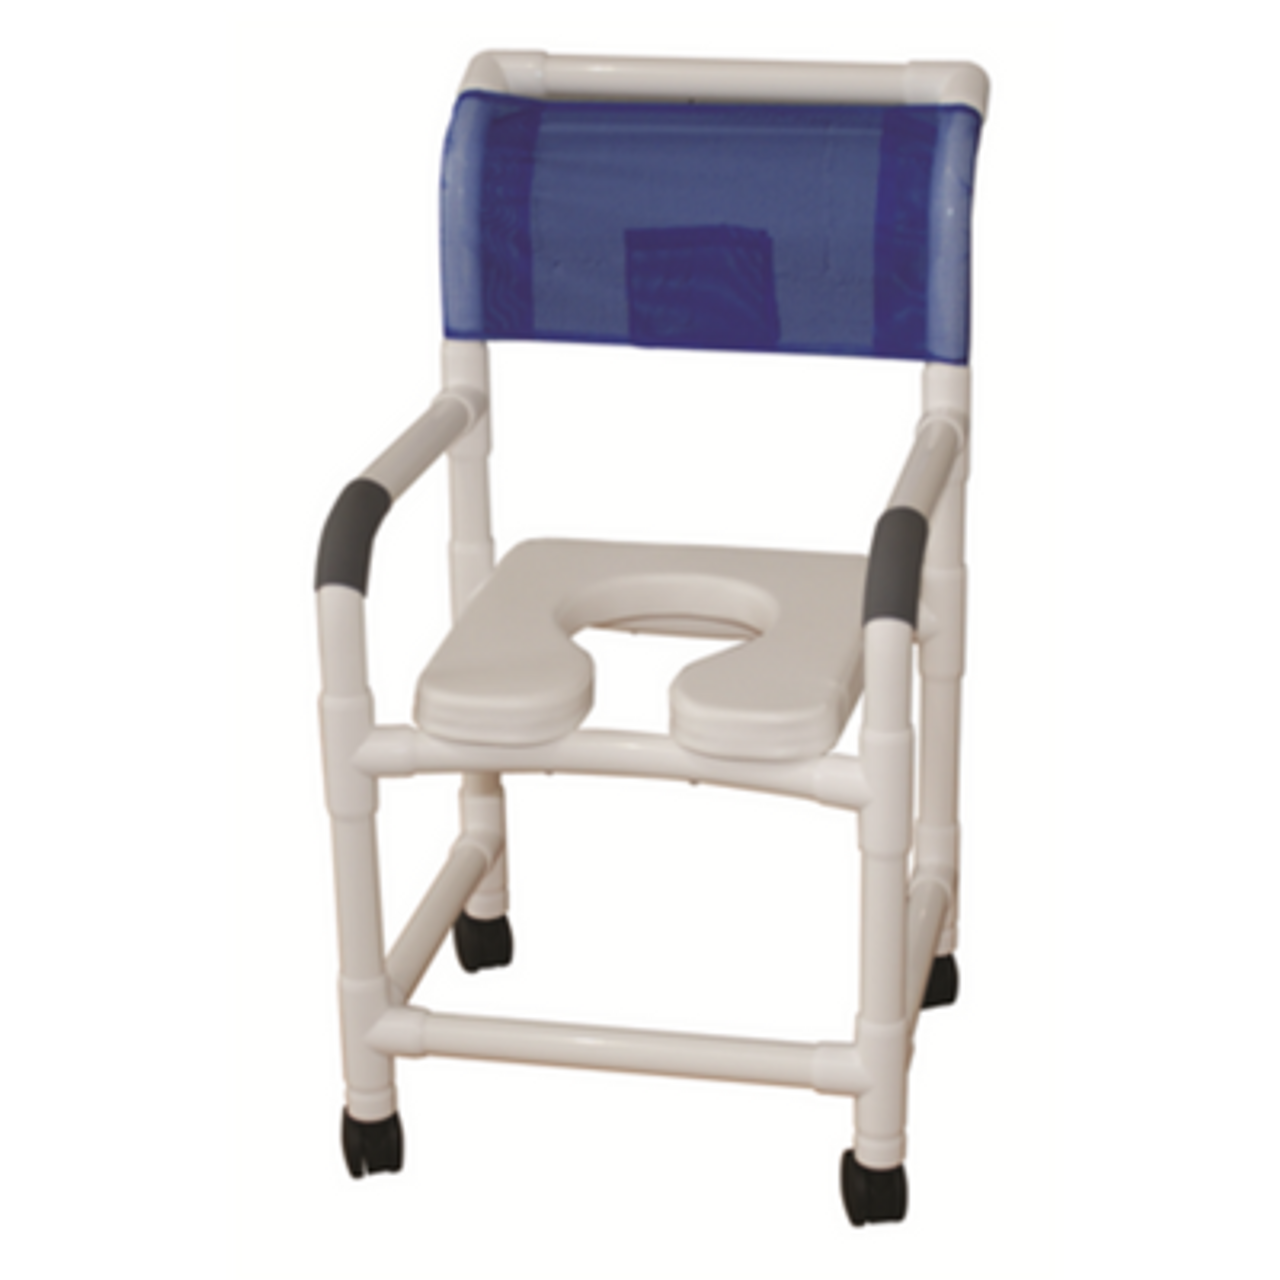 Rolling Shower Chair Padded Seat